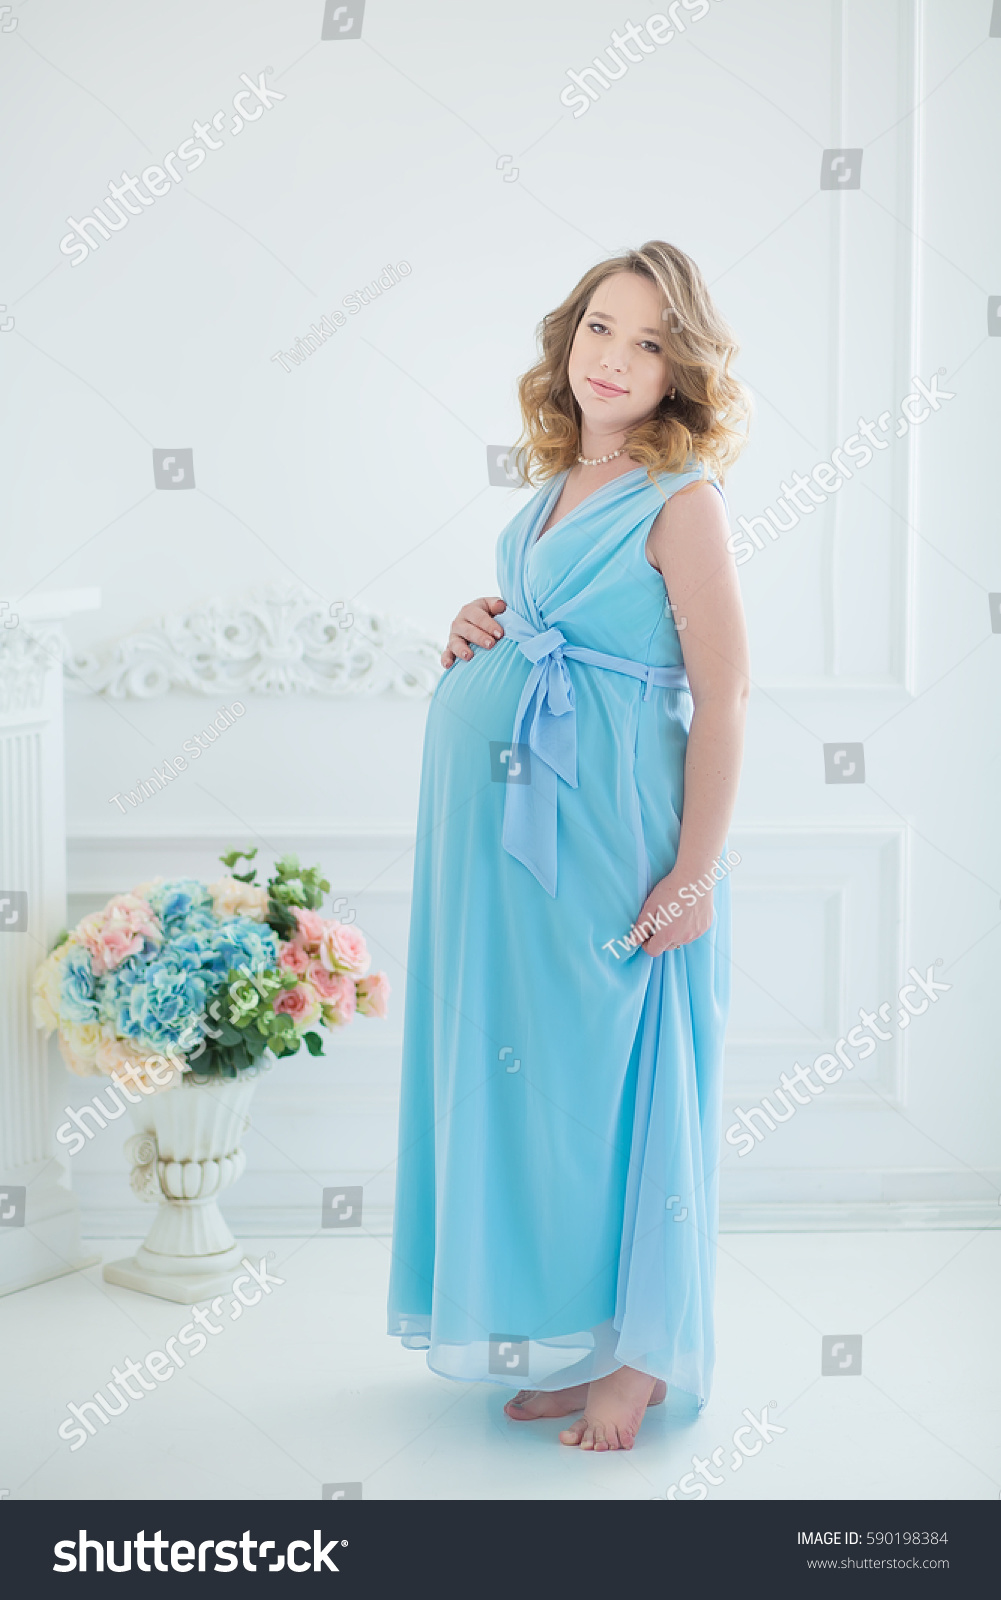 Beautiful Curly Brunette Young Pregnant Woman Stock Photo (Royalty ...